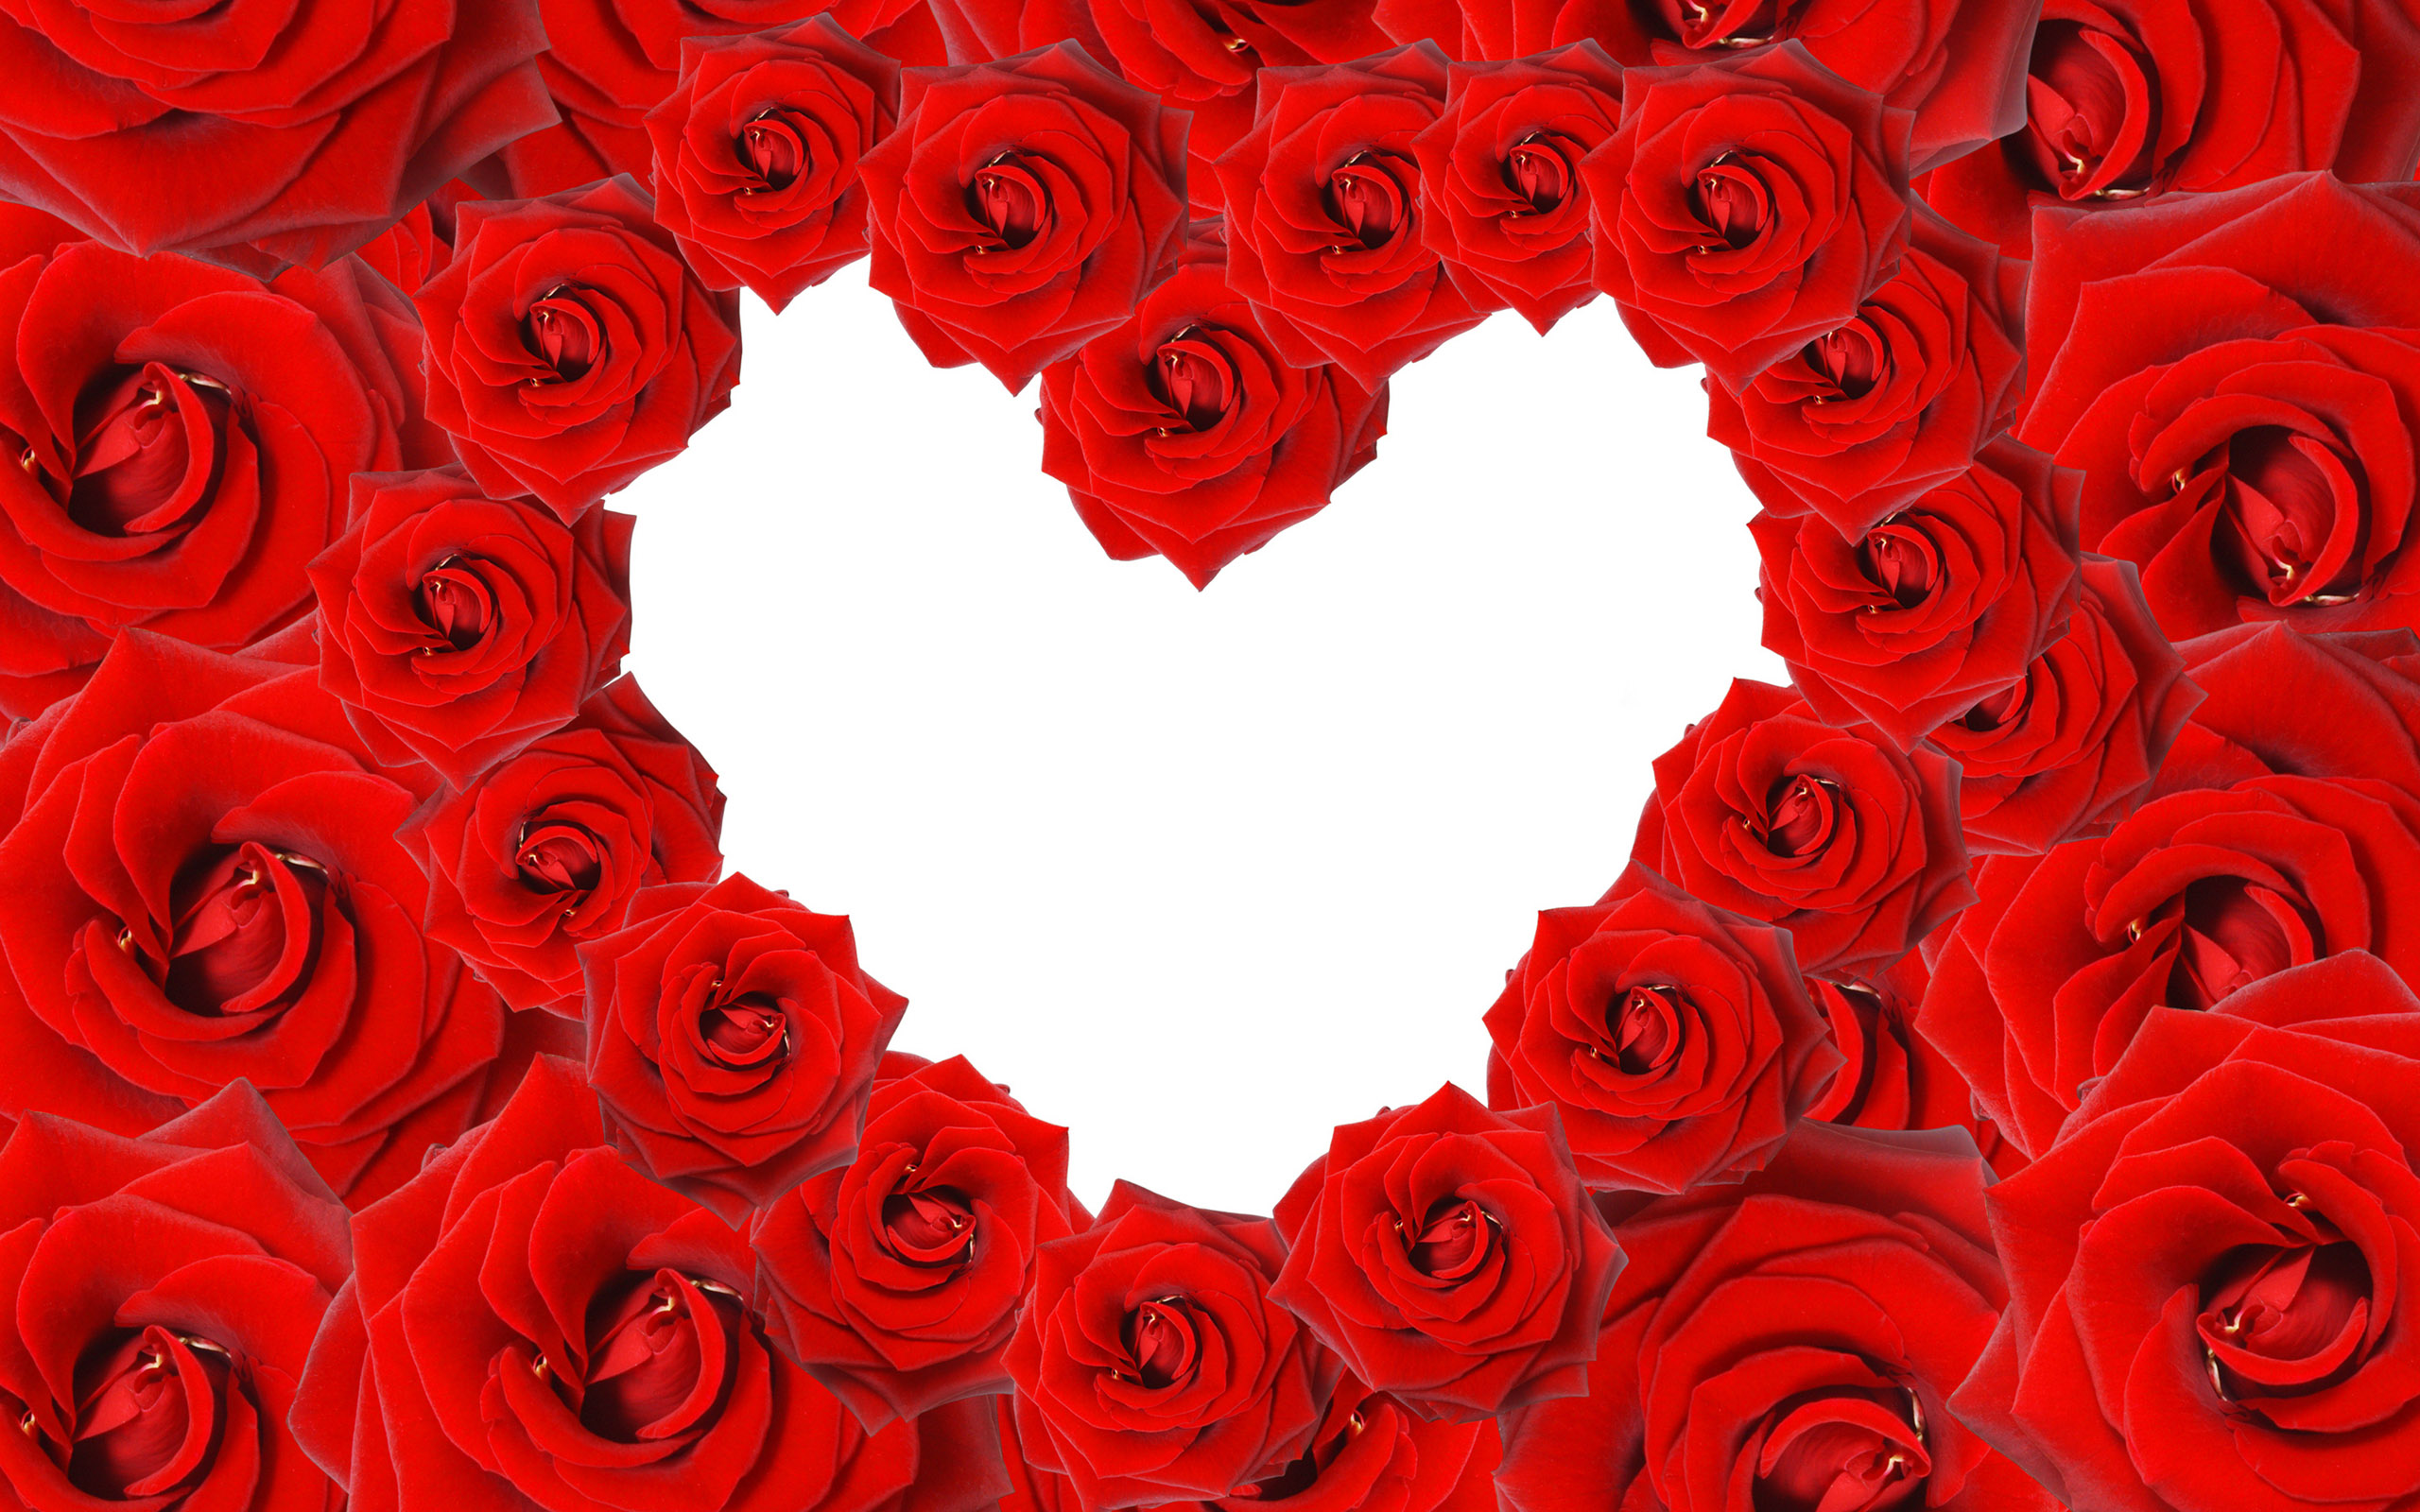 heart wallpapers roses